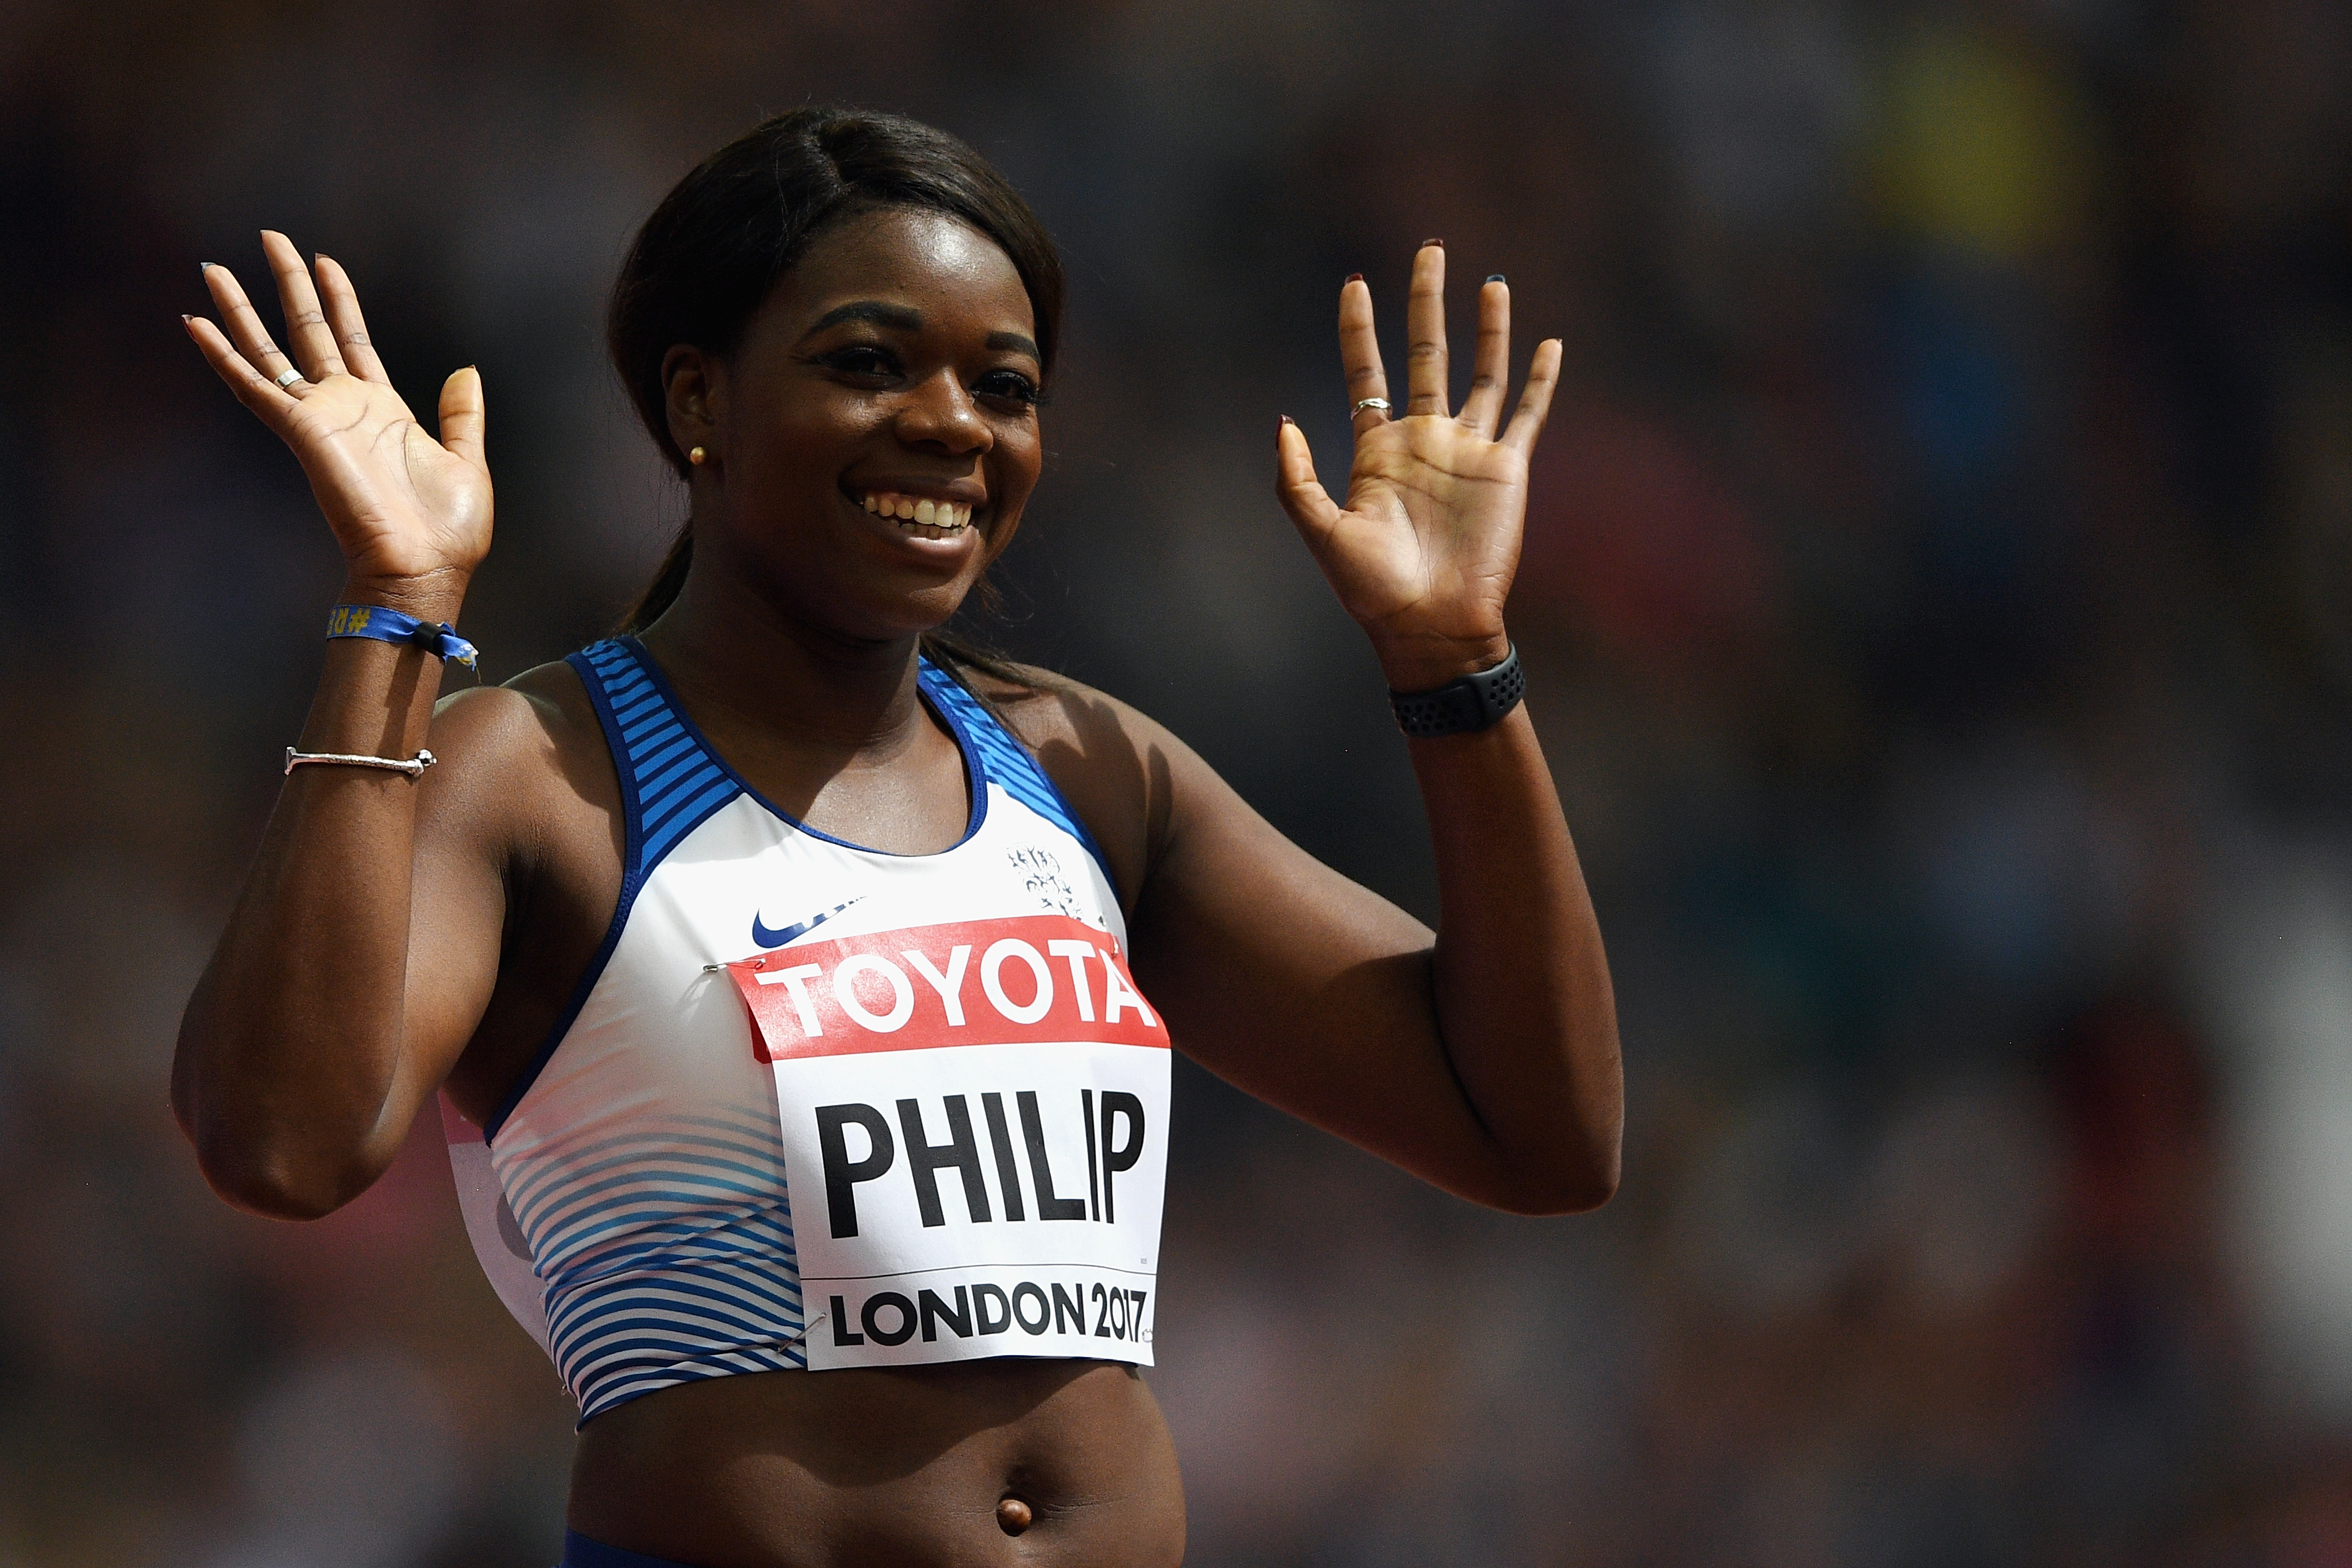 Philip lays down world lead as Glasgow 2019 contenders come to party